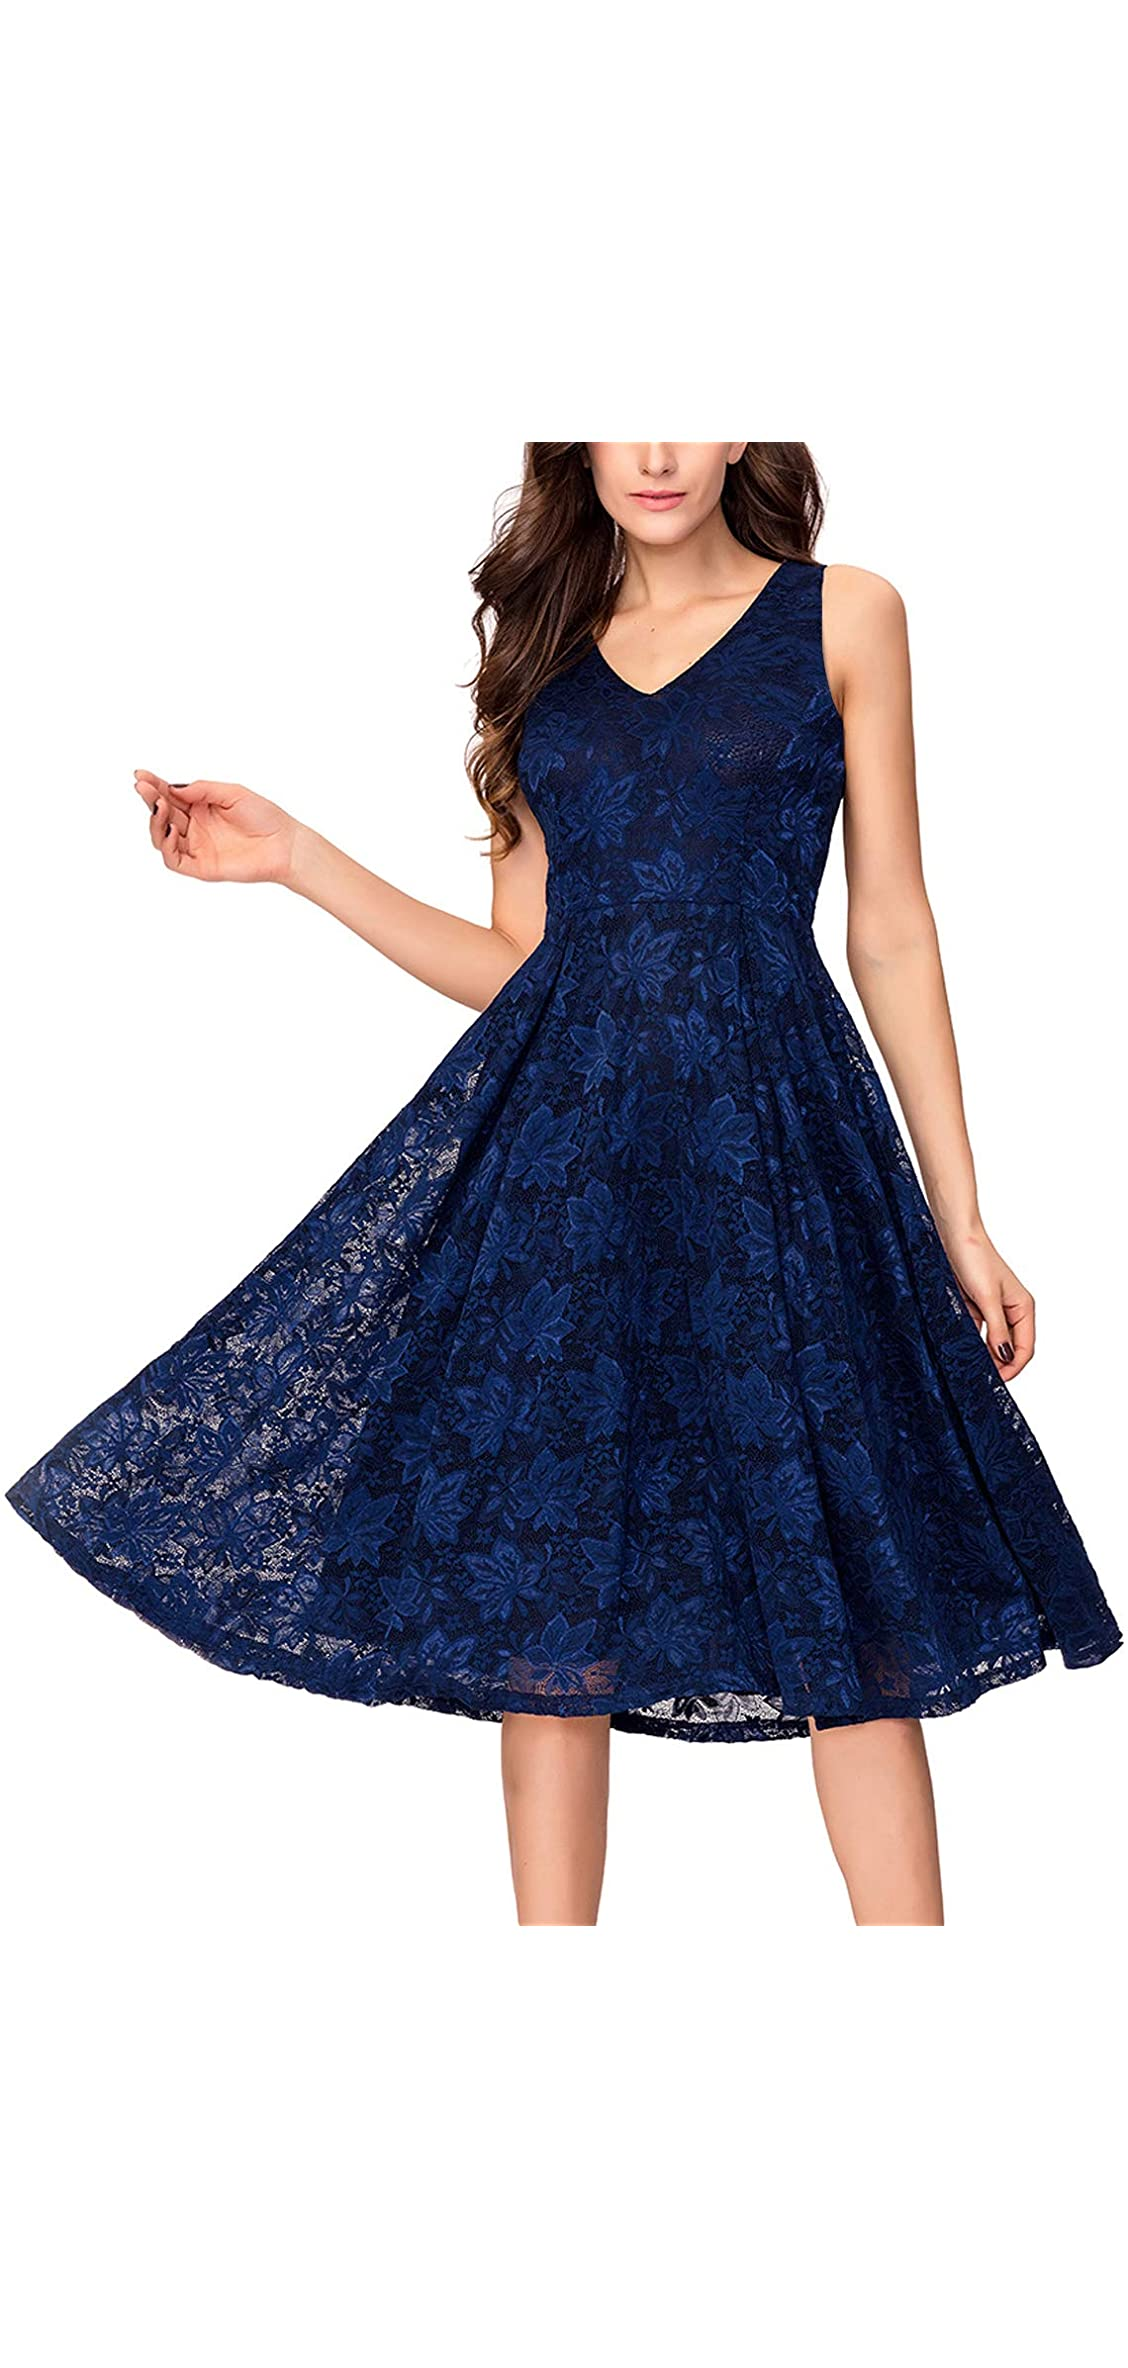 Lace V Neck Fit  Flare Midi Cocktail Dress For Women